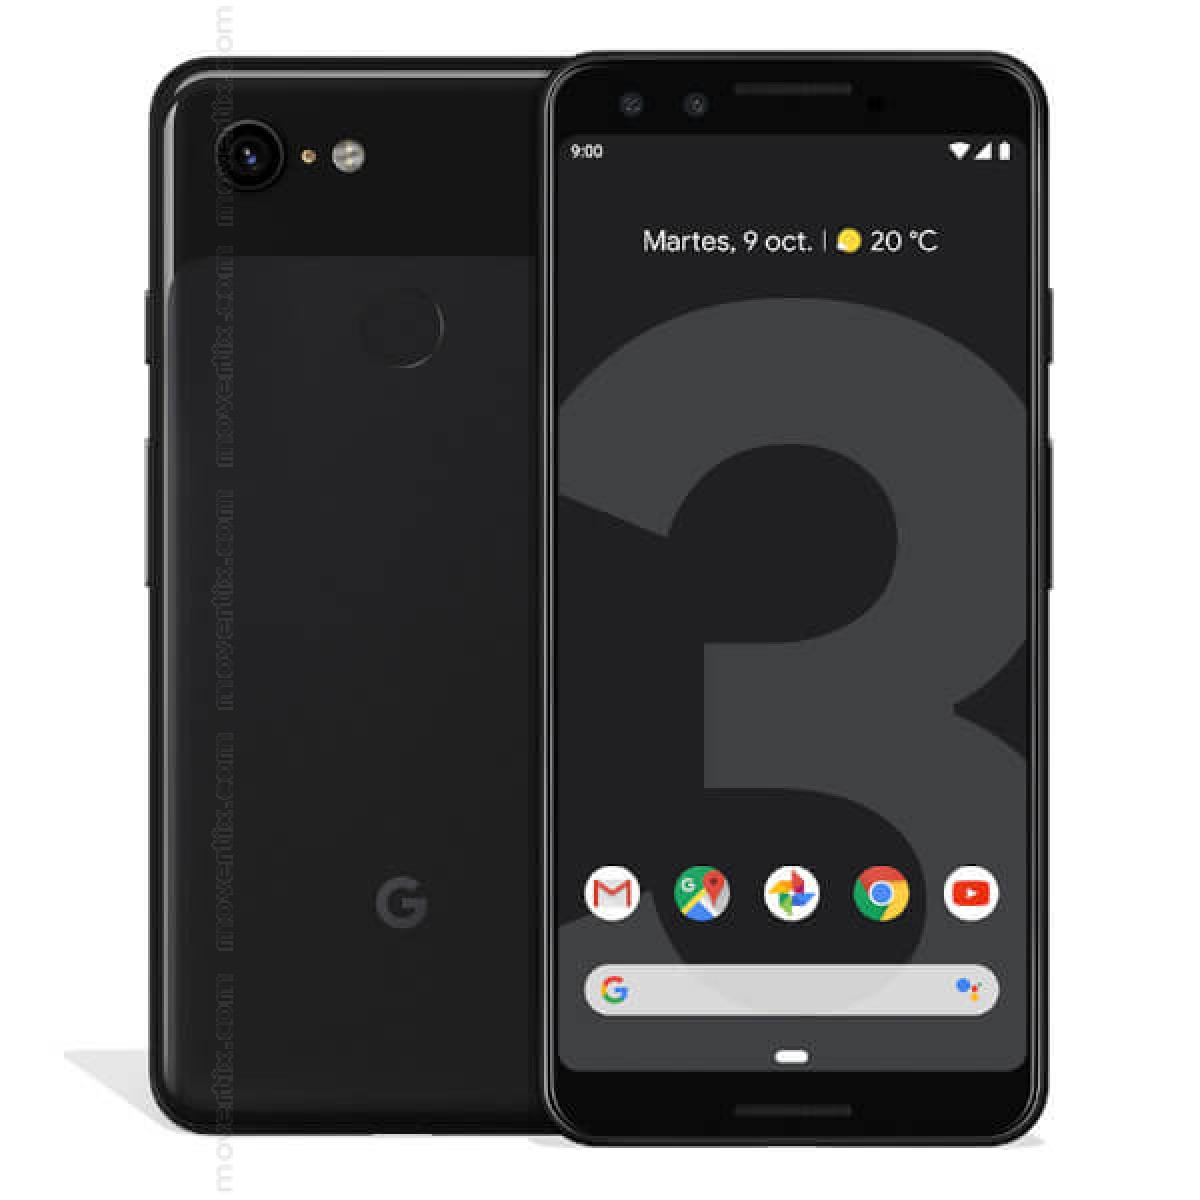 Moviles Libres Blackberry Google Pixel 3 En Negro De 64gb G013a 0842776107640